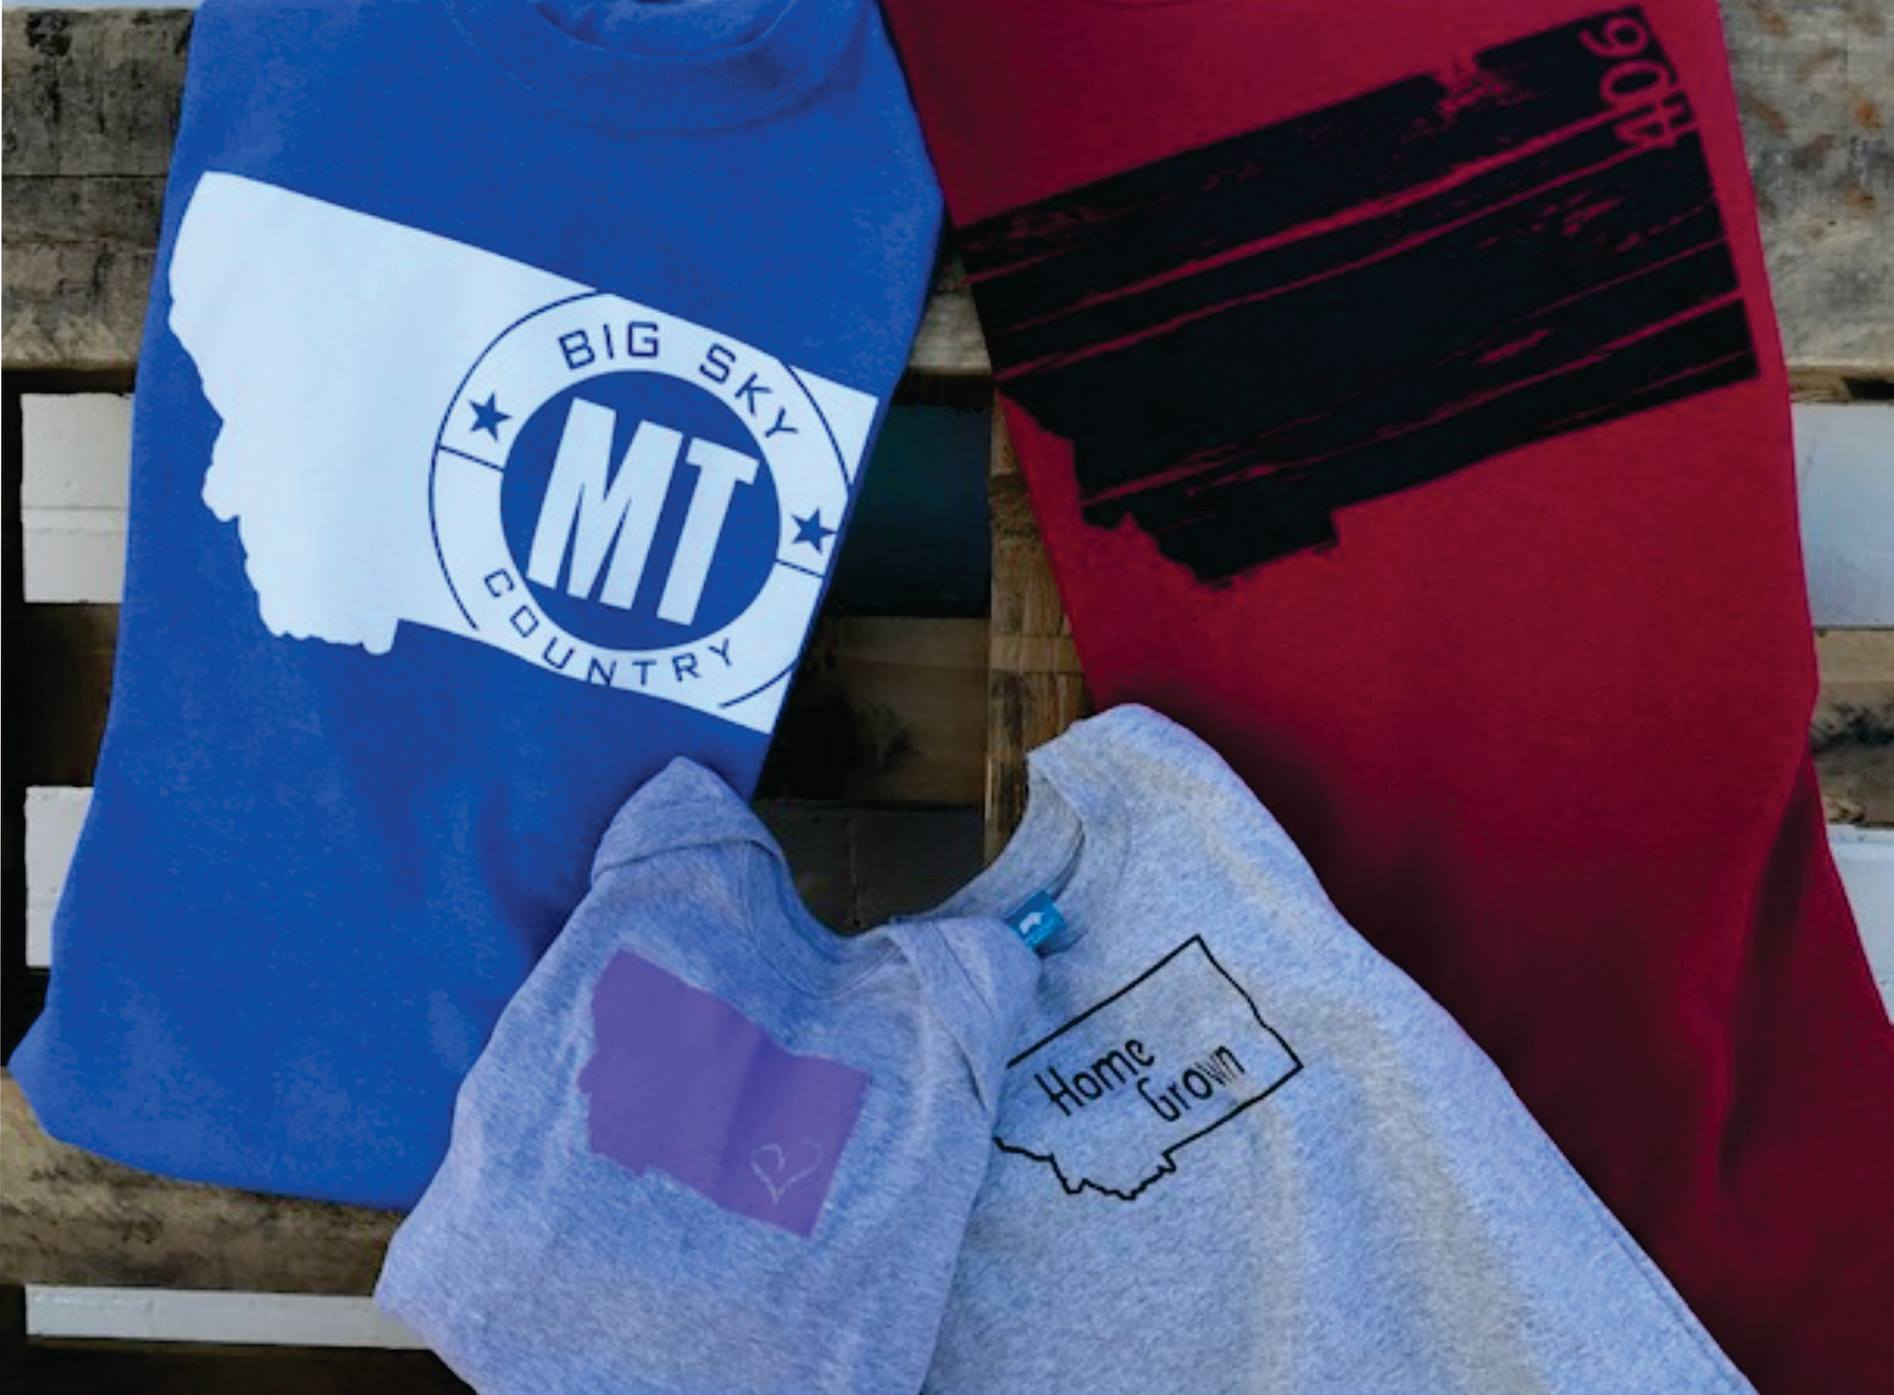 Screen printed t-shirts with Montana state logos on front